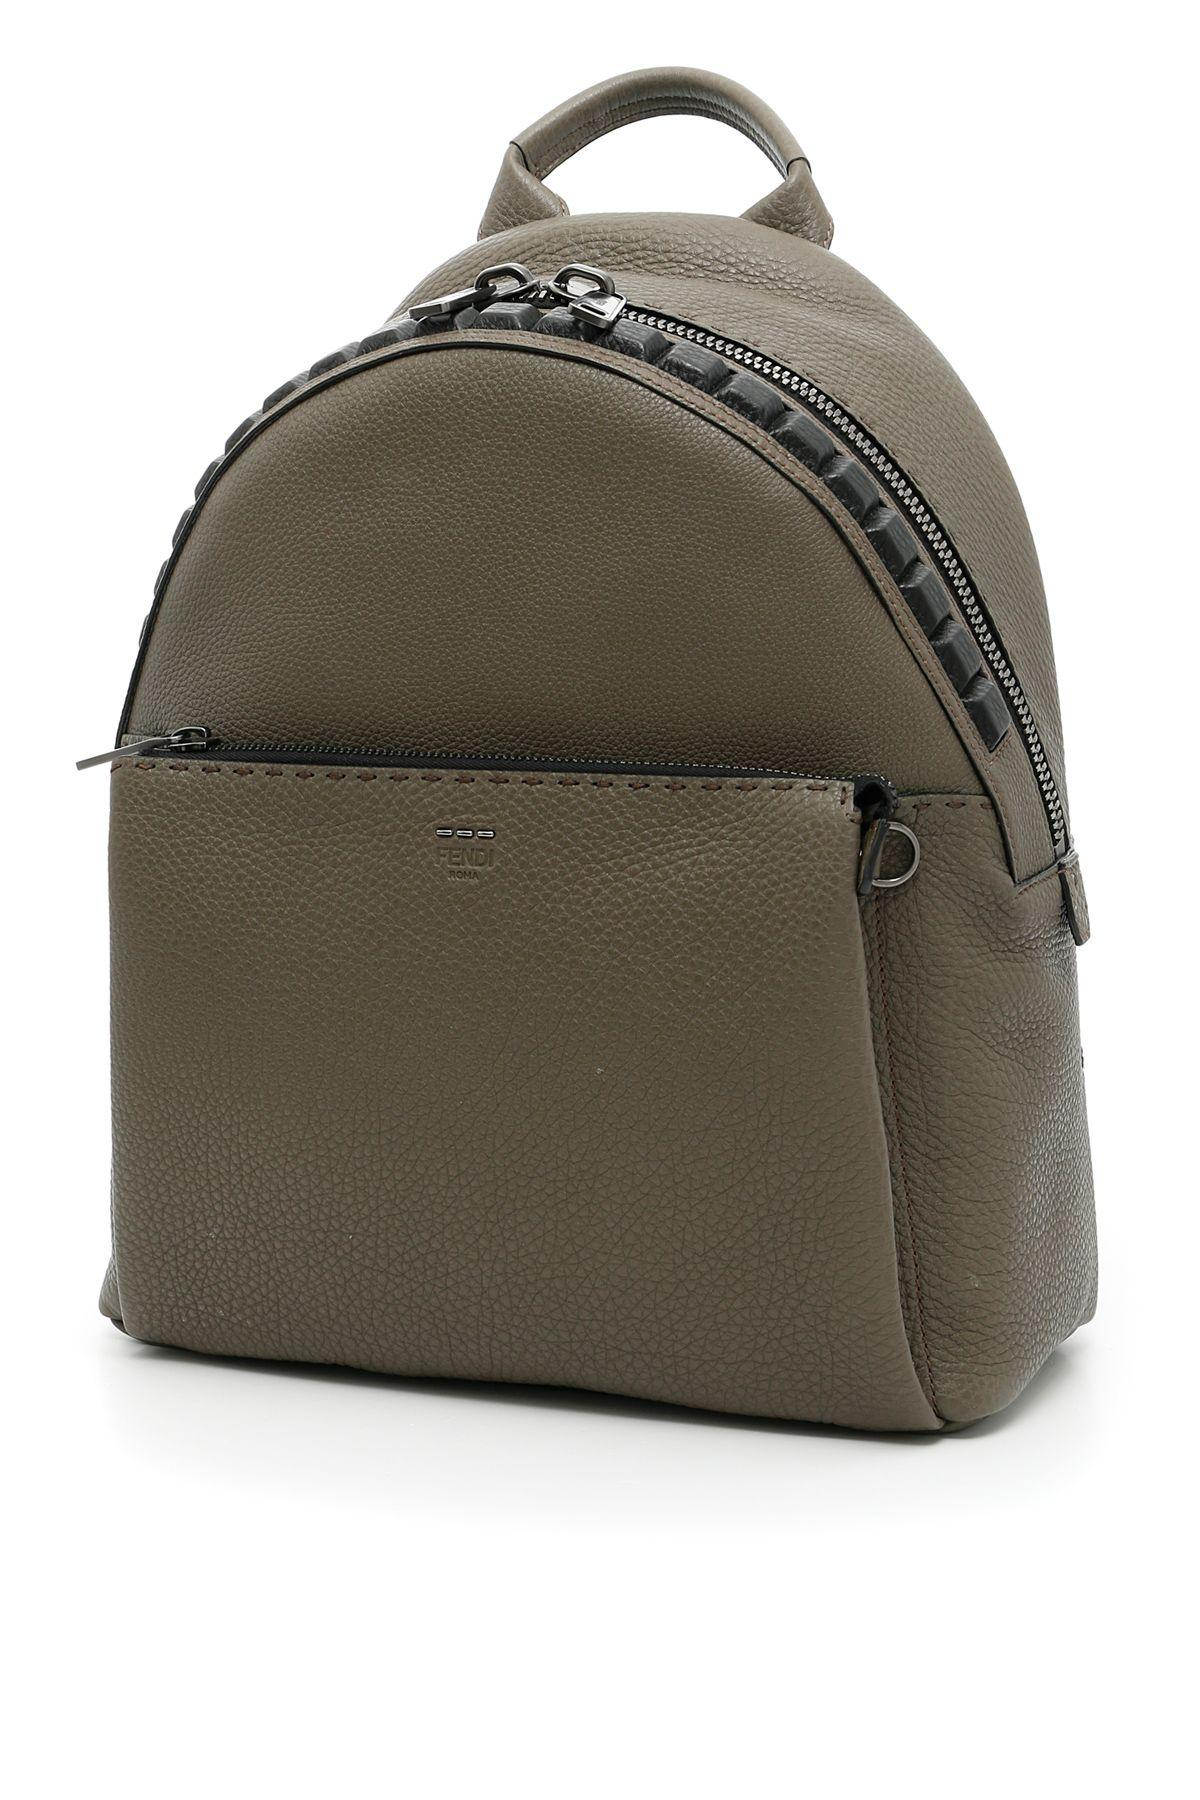 Fendi Selleria Backpack In Milit+nr+rut.satverde